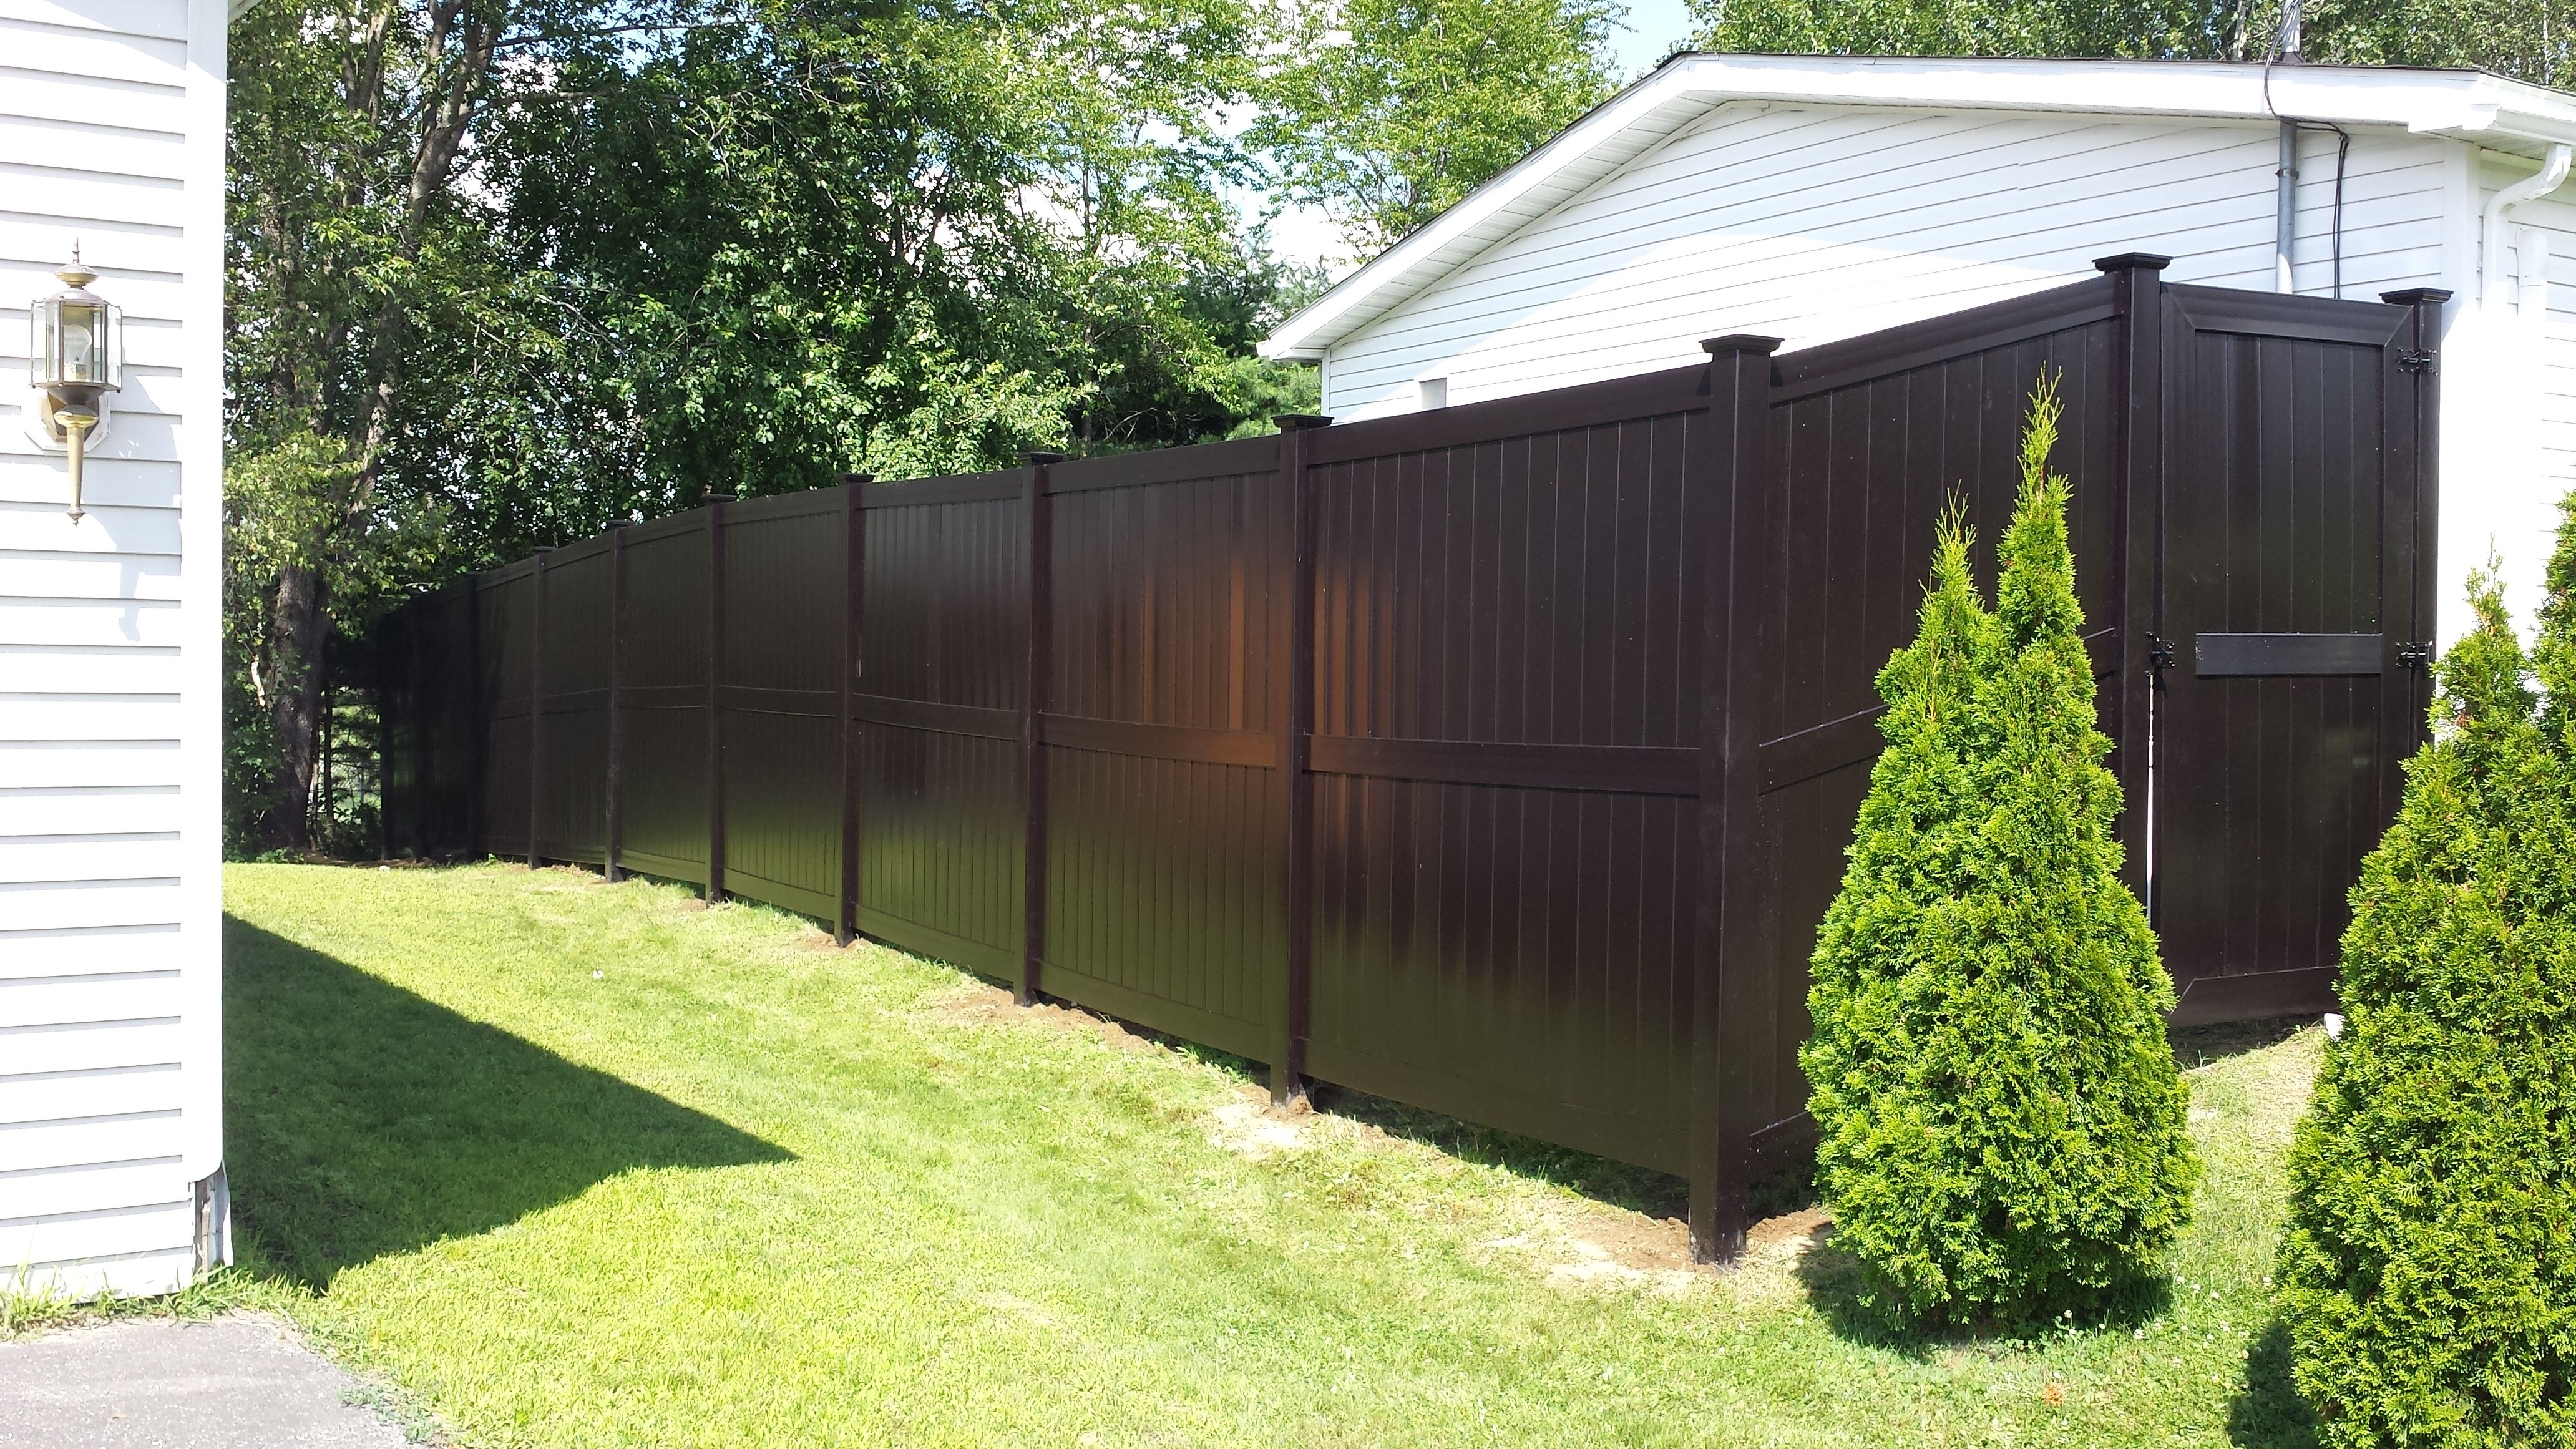 Backyard vinyl fence ideas best 25 fencing ideas on pinterest vinyl fencing for horses composite fence panels use pvc board pvc panel fences long life baanklon Image collections